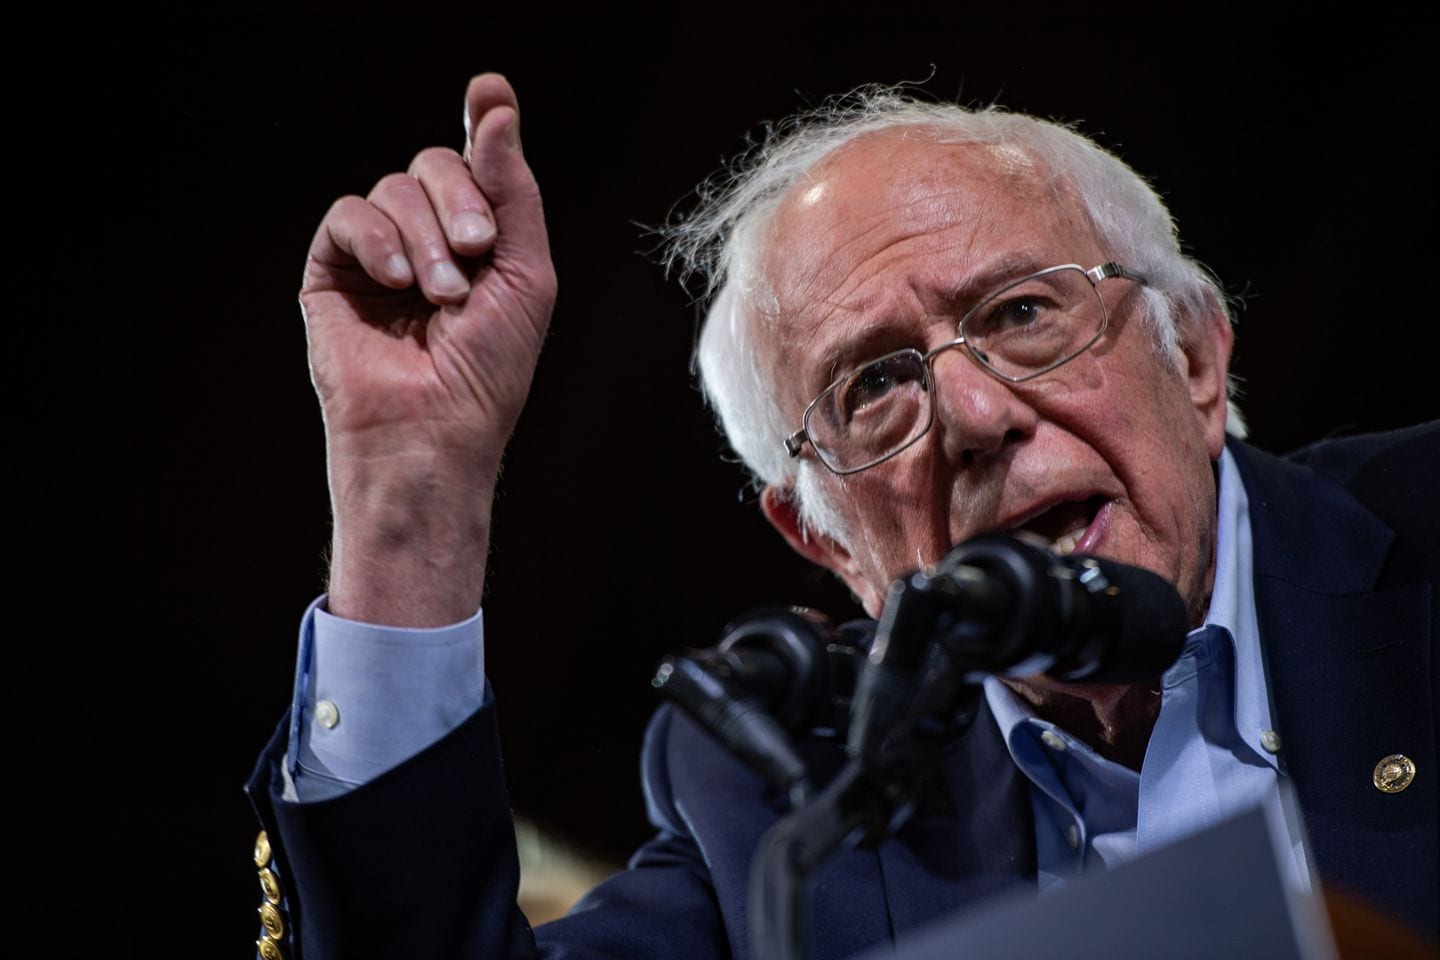 Bernie Sanders is under pressure to win Michigan and give his campaign fresh momentum.